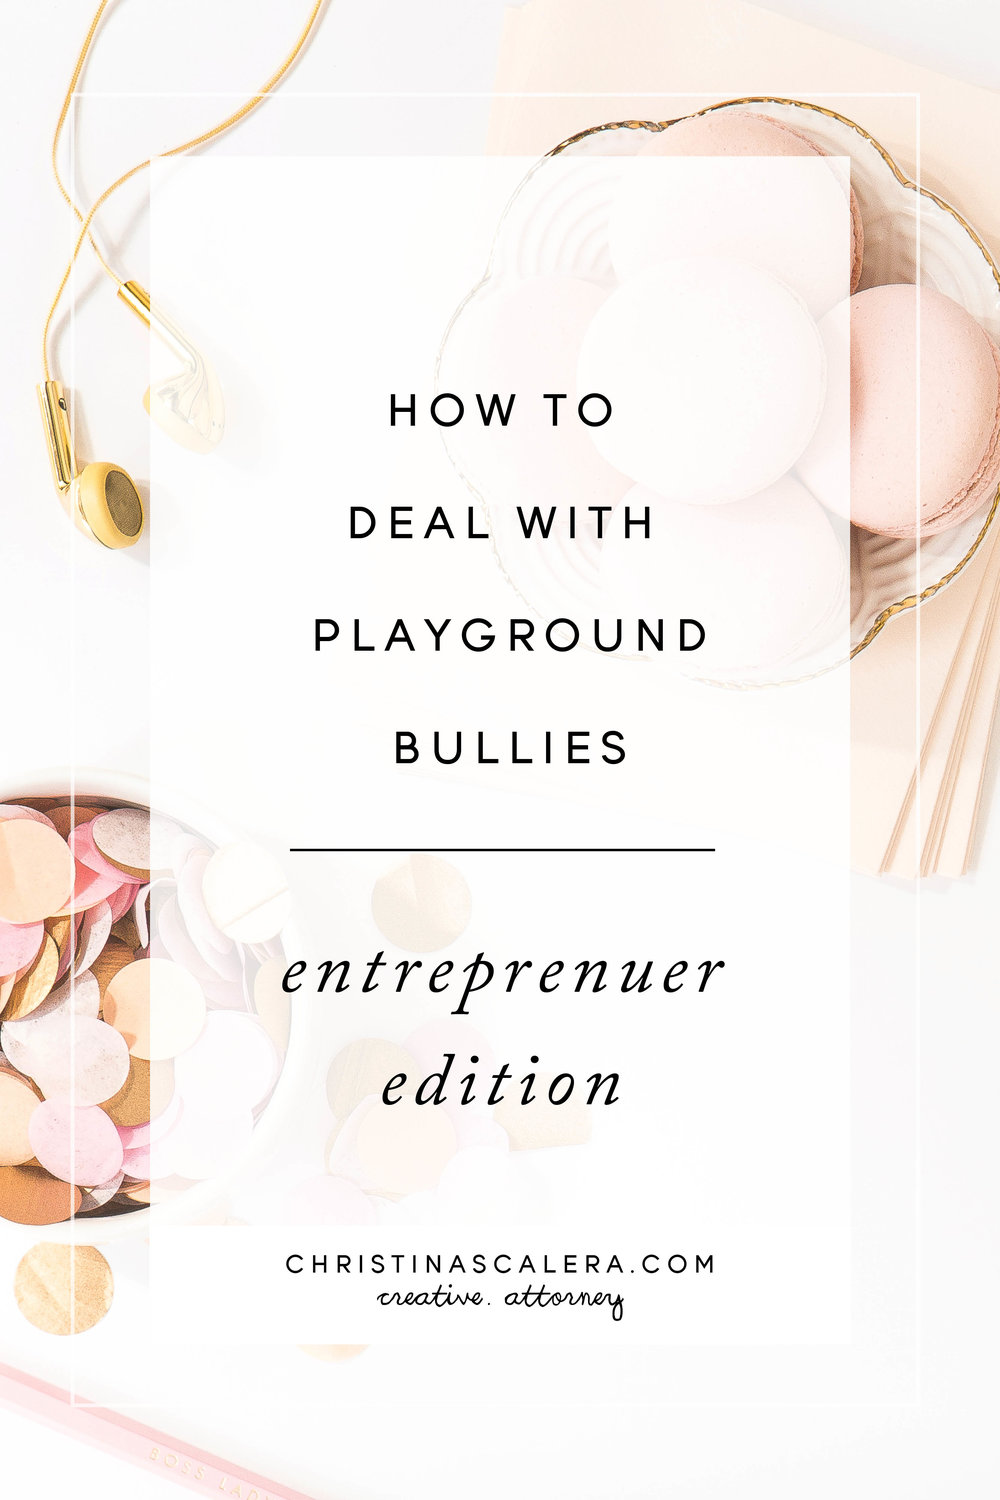 How to Deal with Playground Bullies, Entrepreneur Edition.